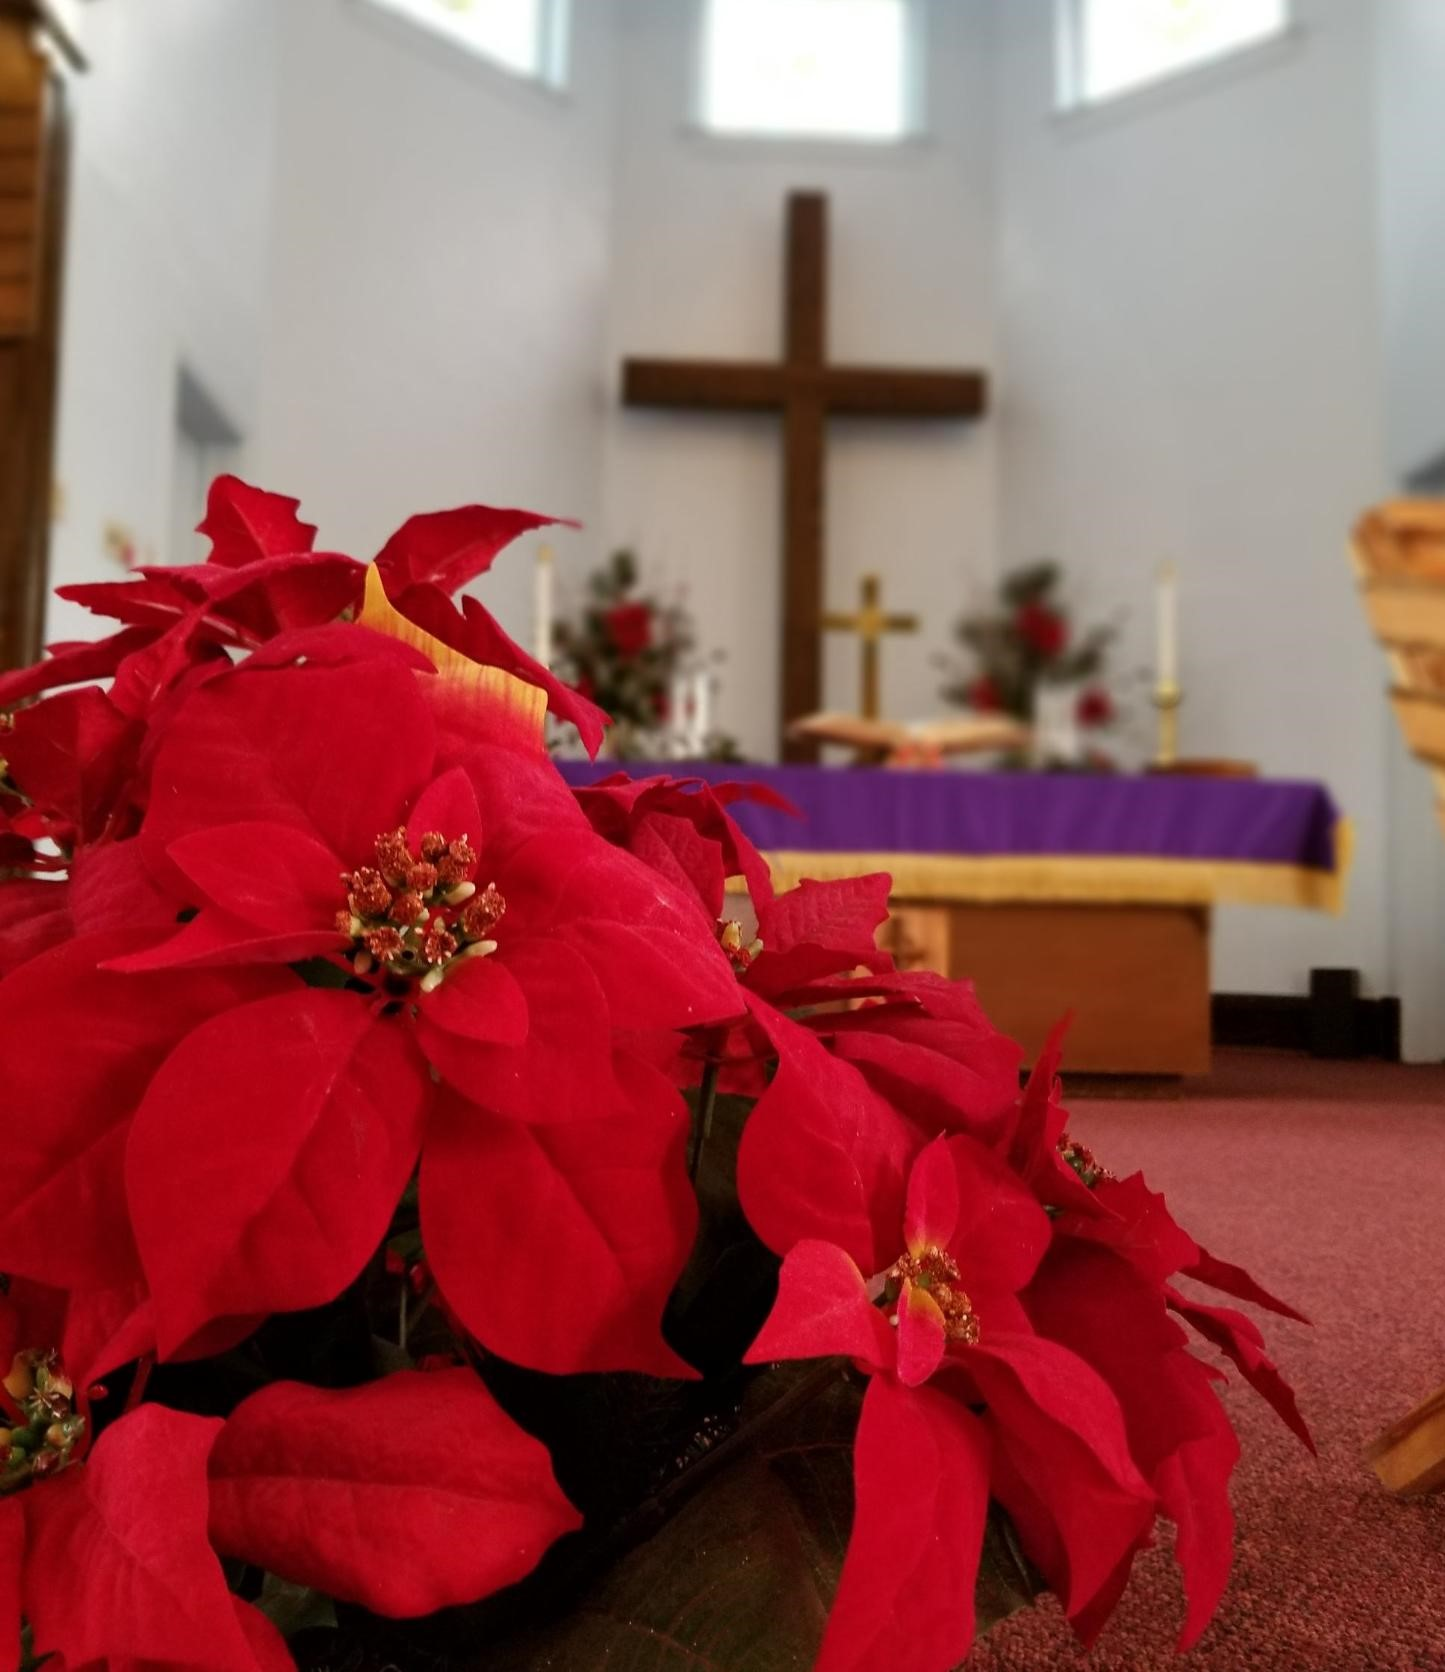 The sanctuary at Palisade United Methodist Church in Palisade, Colorado, is decorated for Advent.